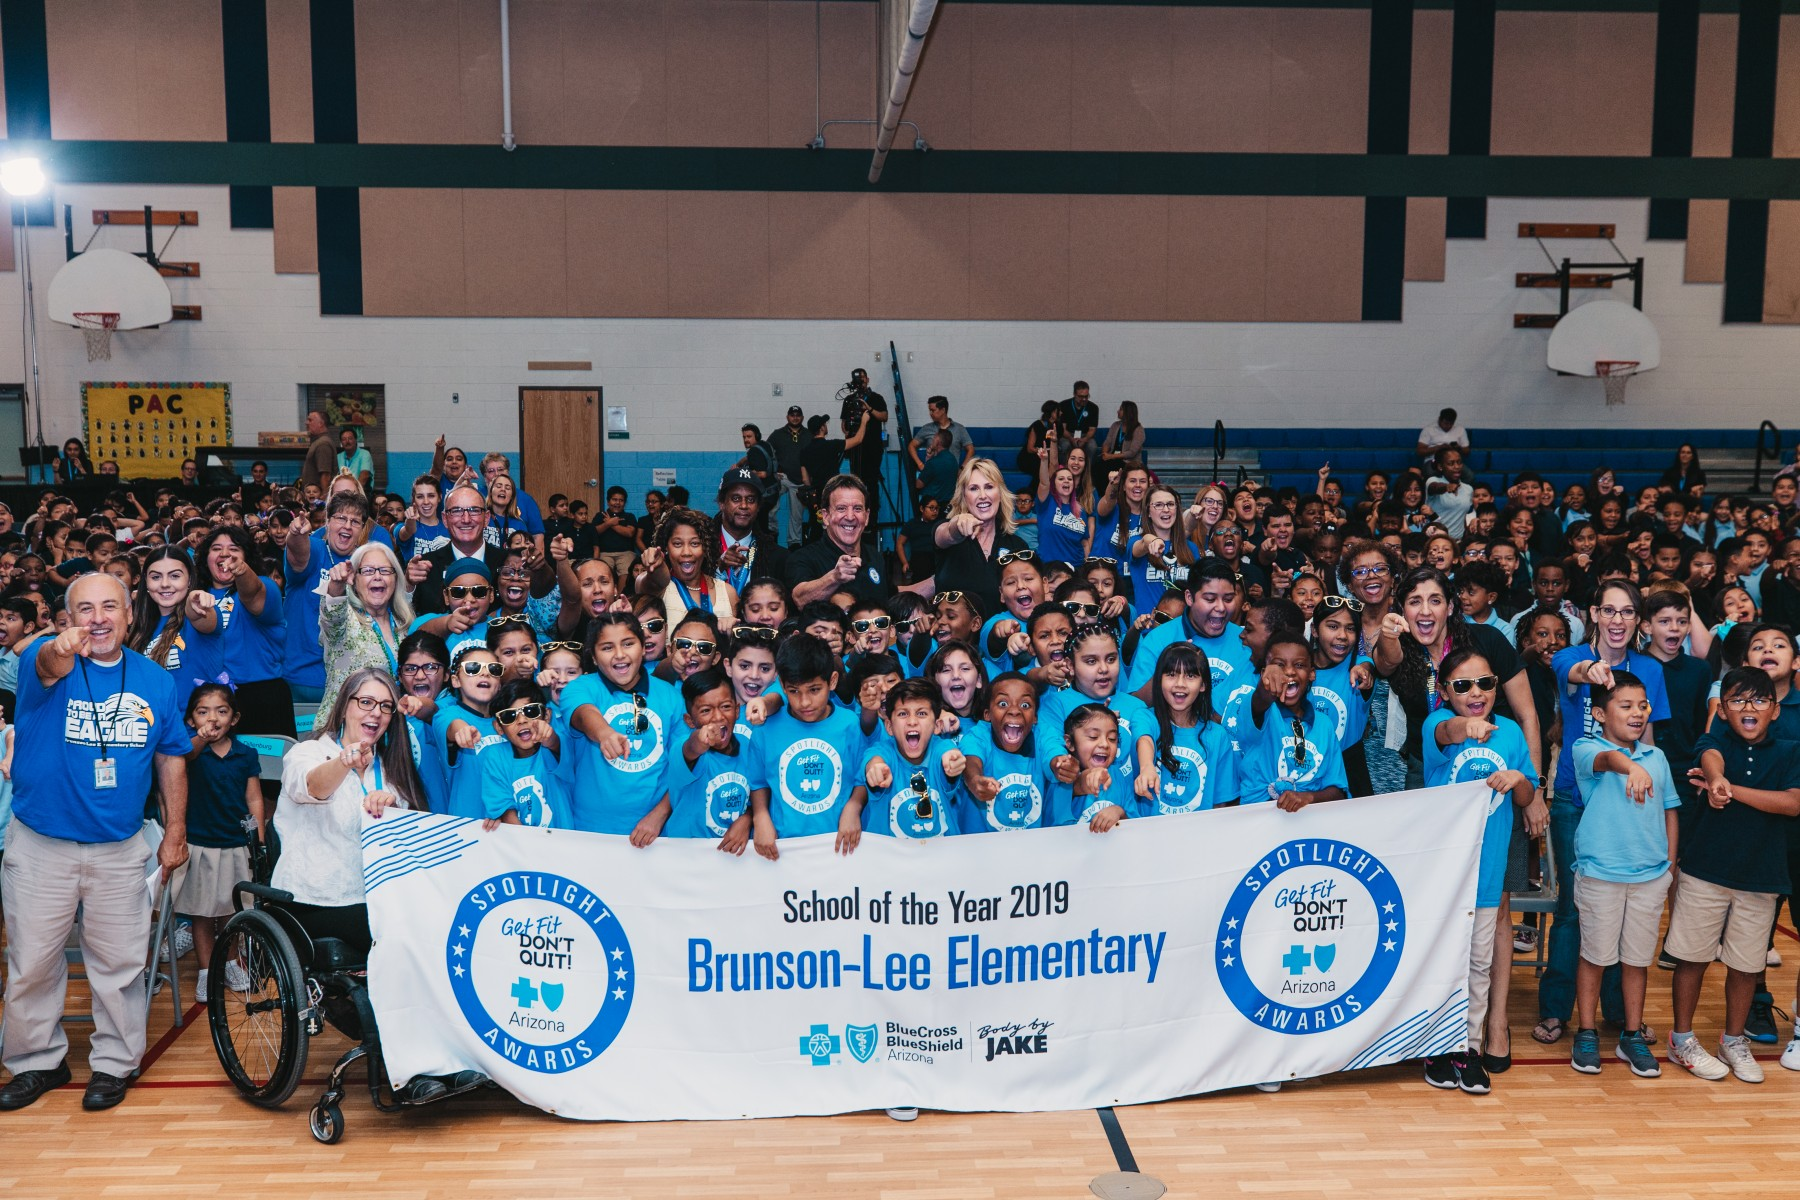 BCBSAZ_Brunson Lee Elementary School Fitness Center (1)